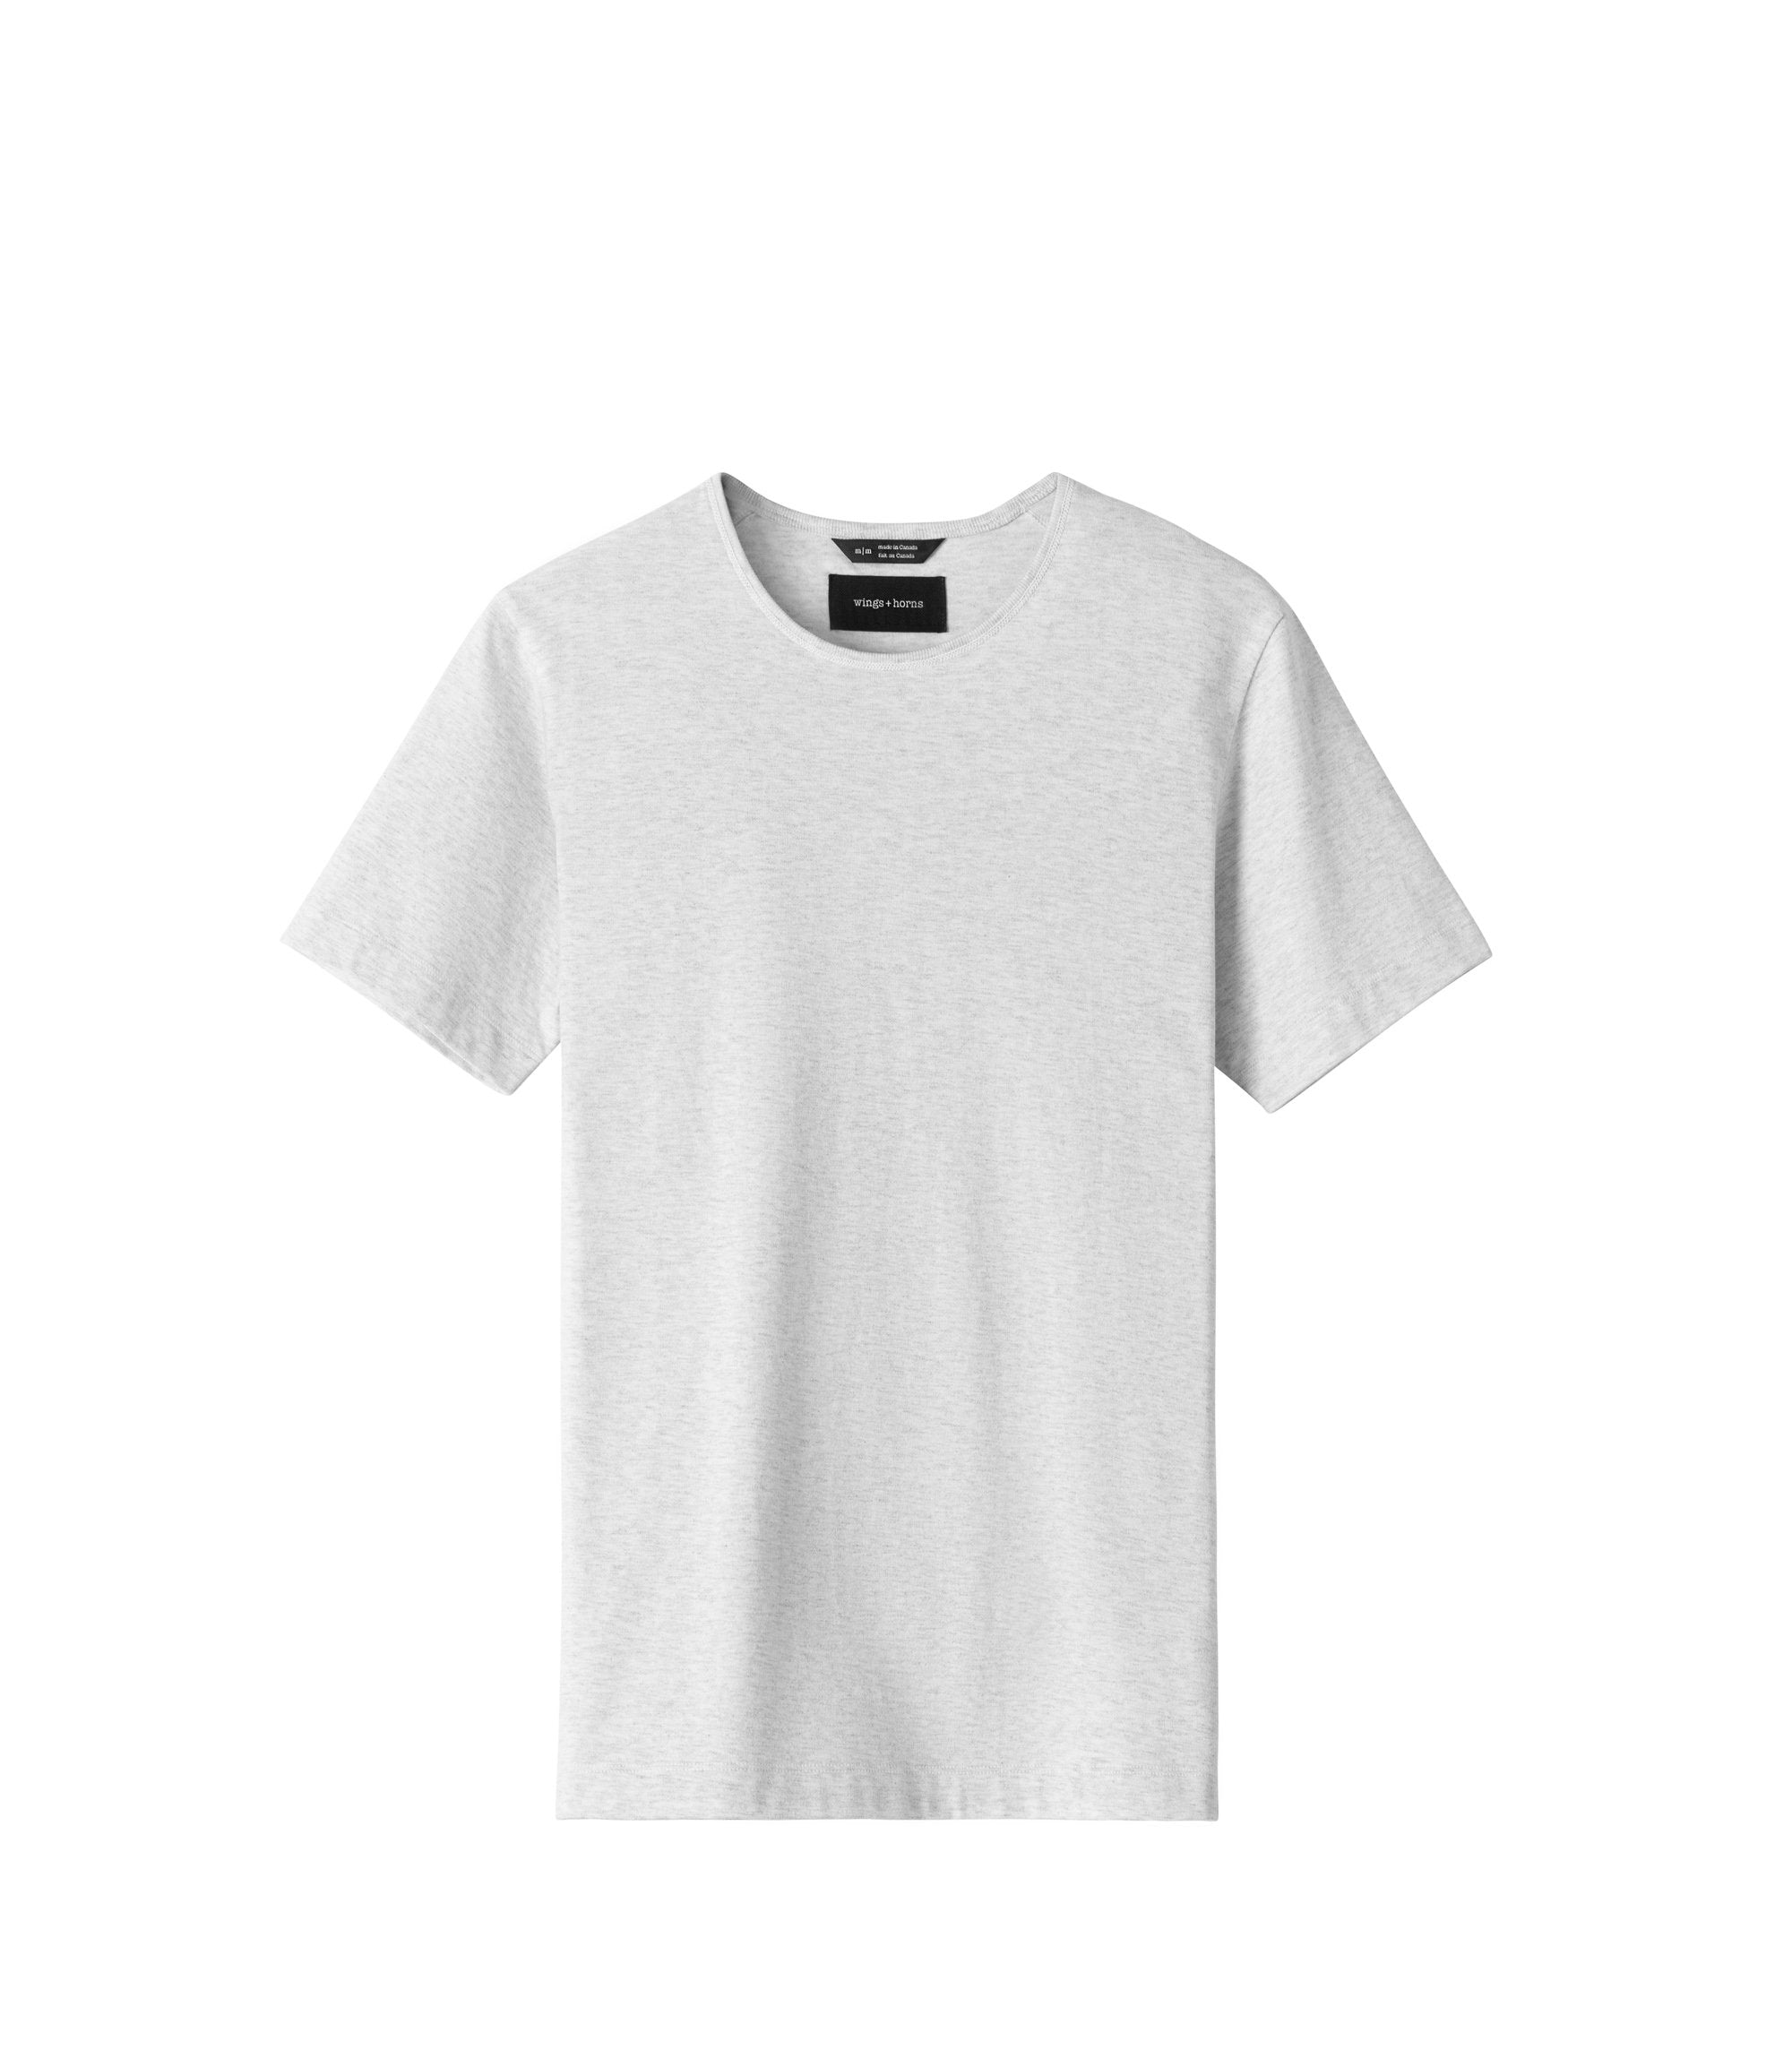 WINGS + HORNS M'S SHIRTS Wht S PIMA JERSEY T-SHIRT